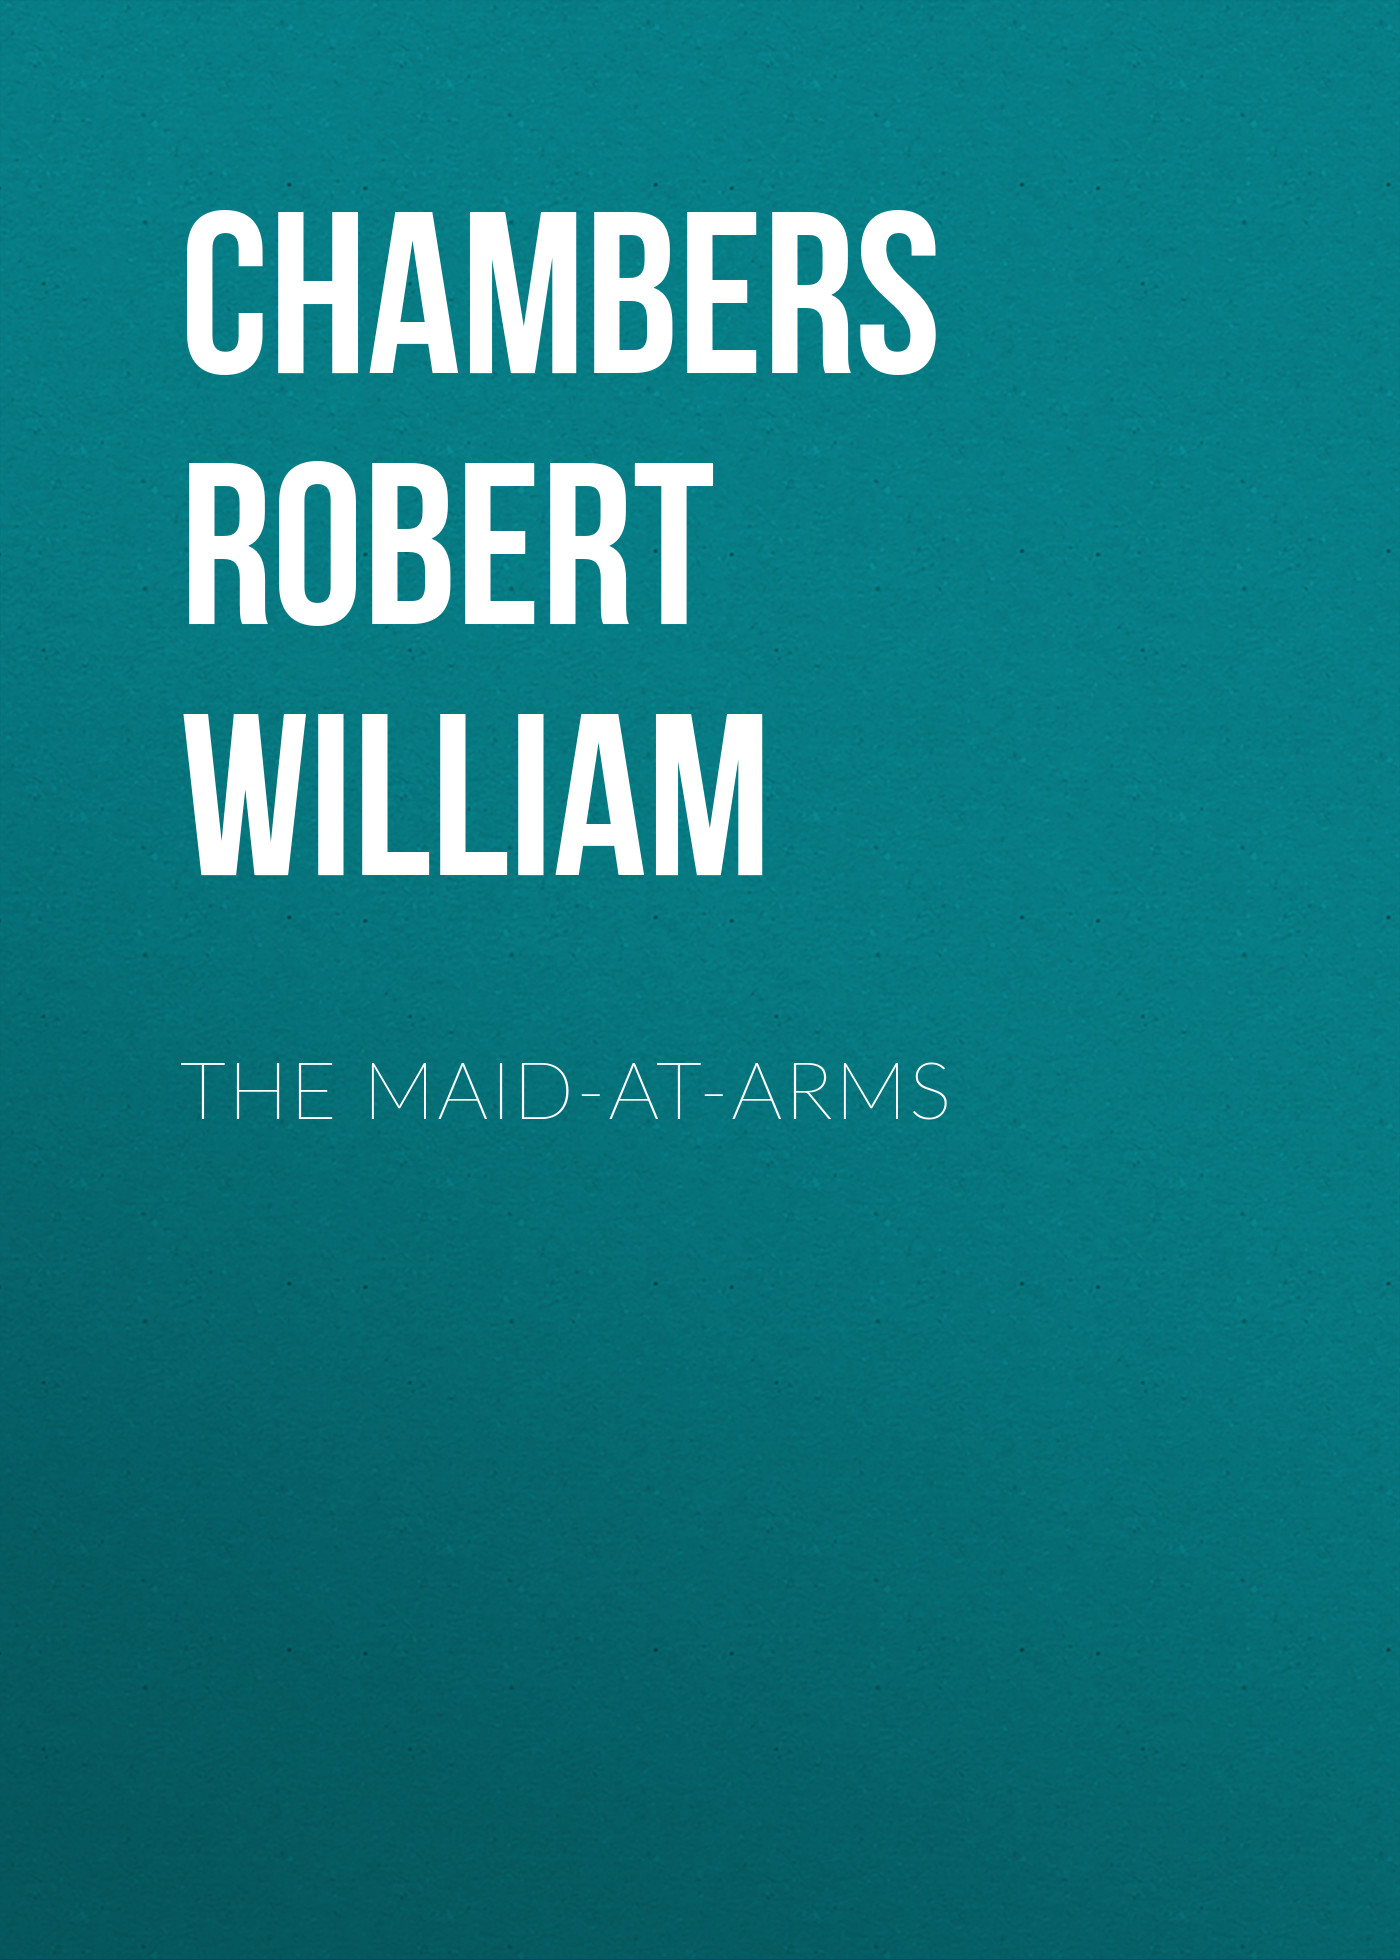 купить Chambers Robert William The Maid-At-Arms в интернет-магазине